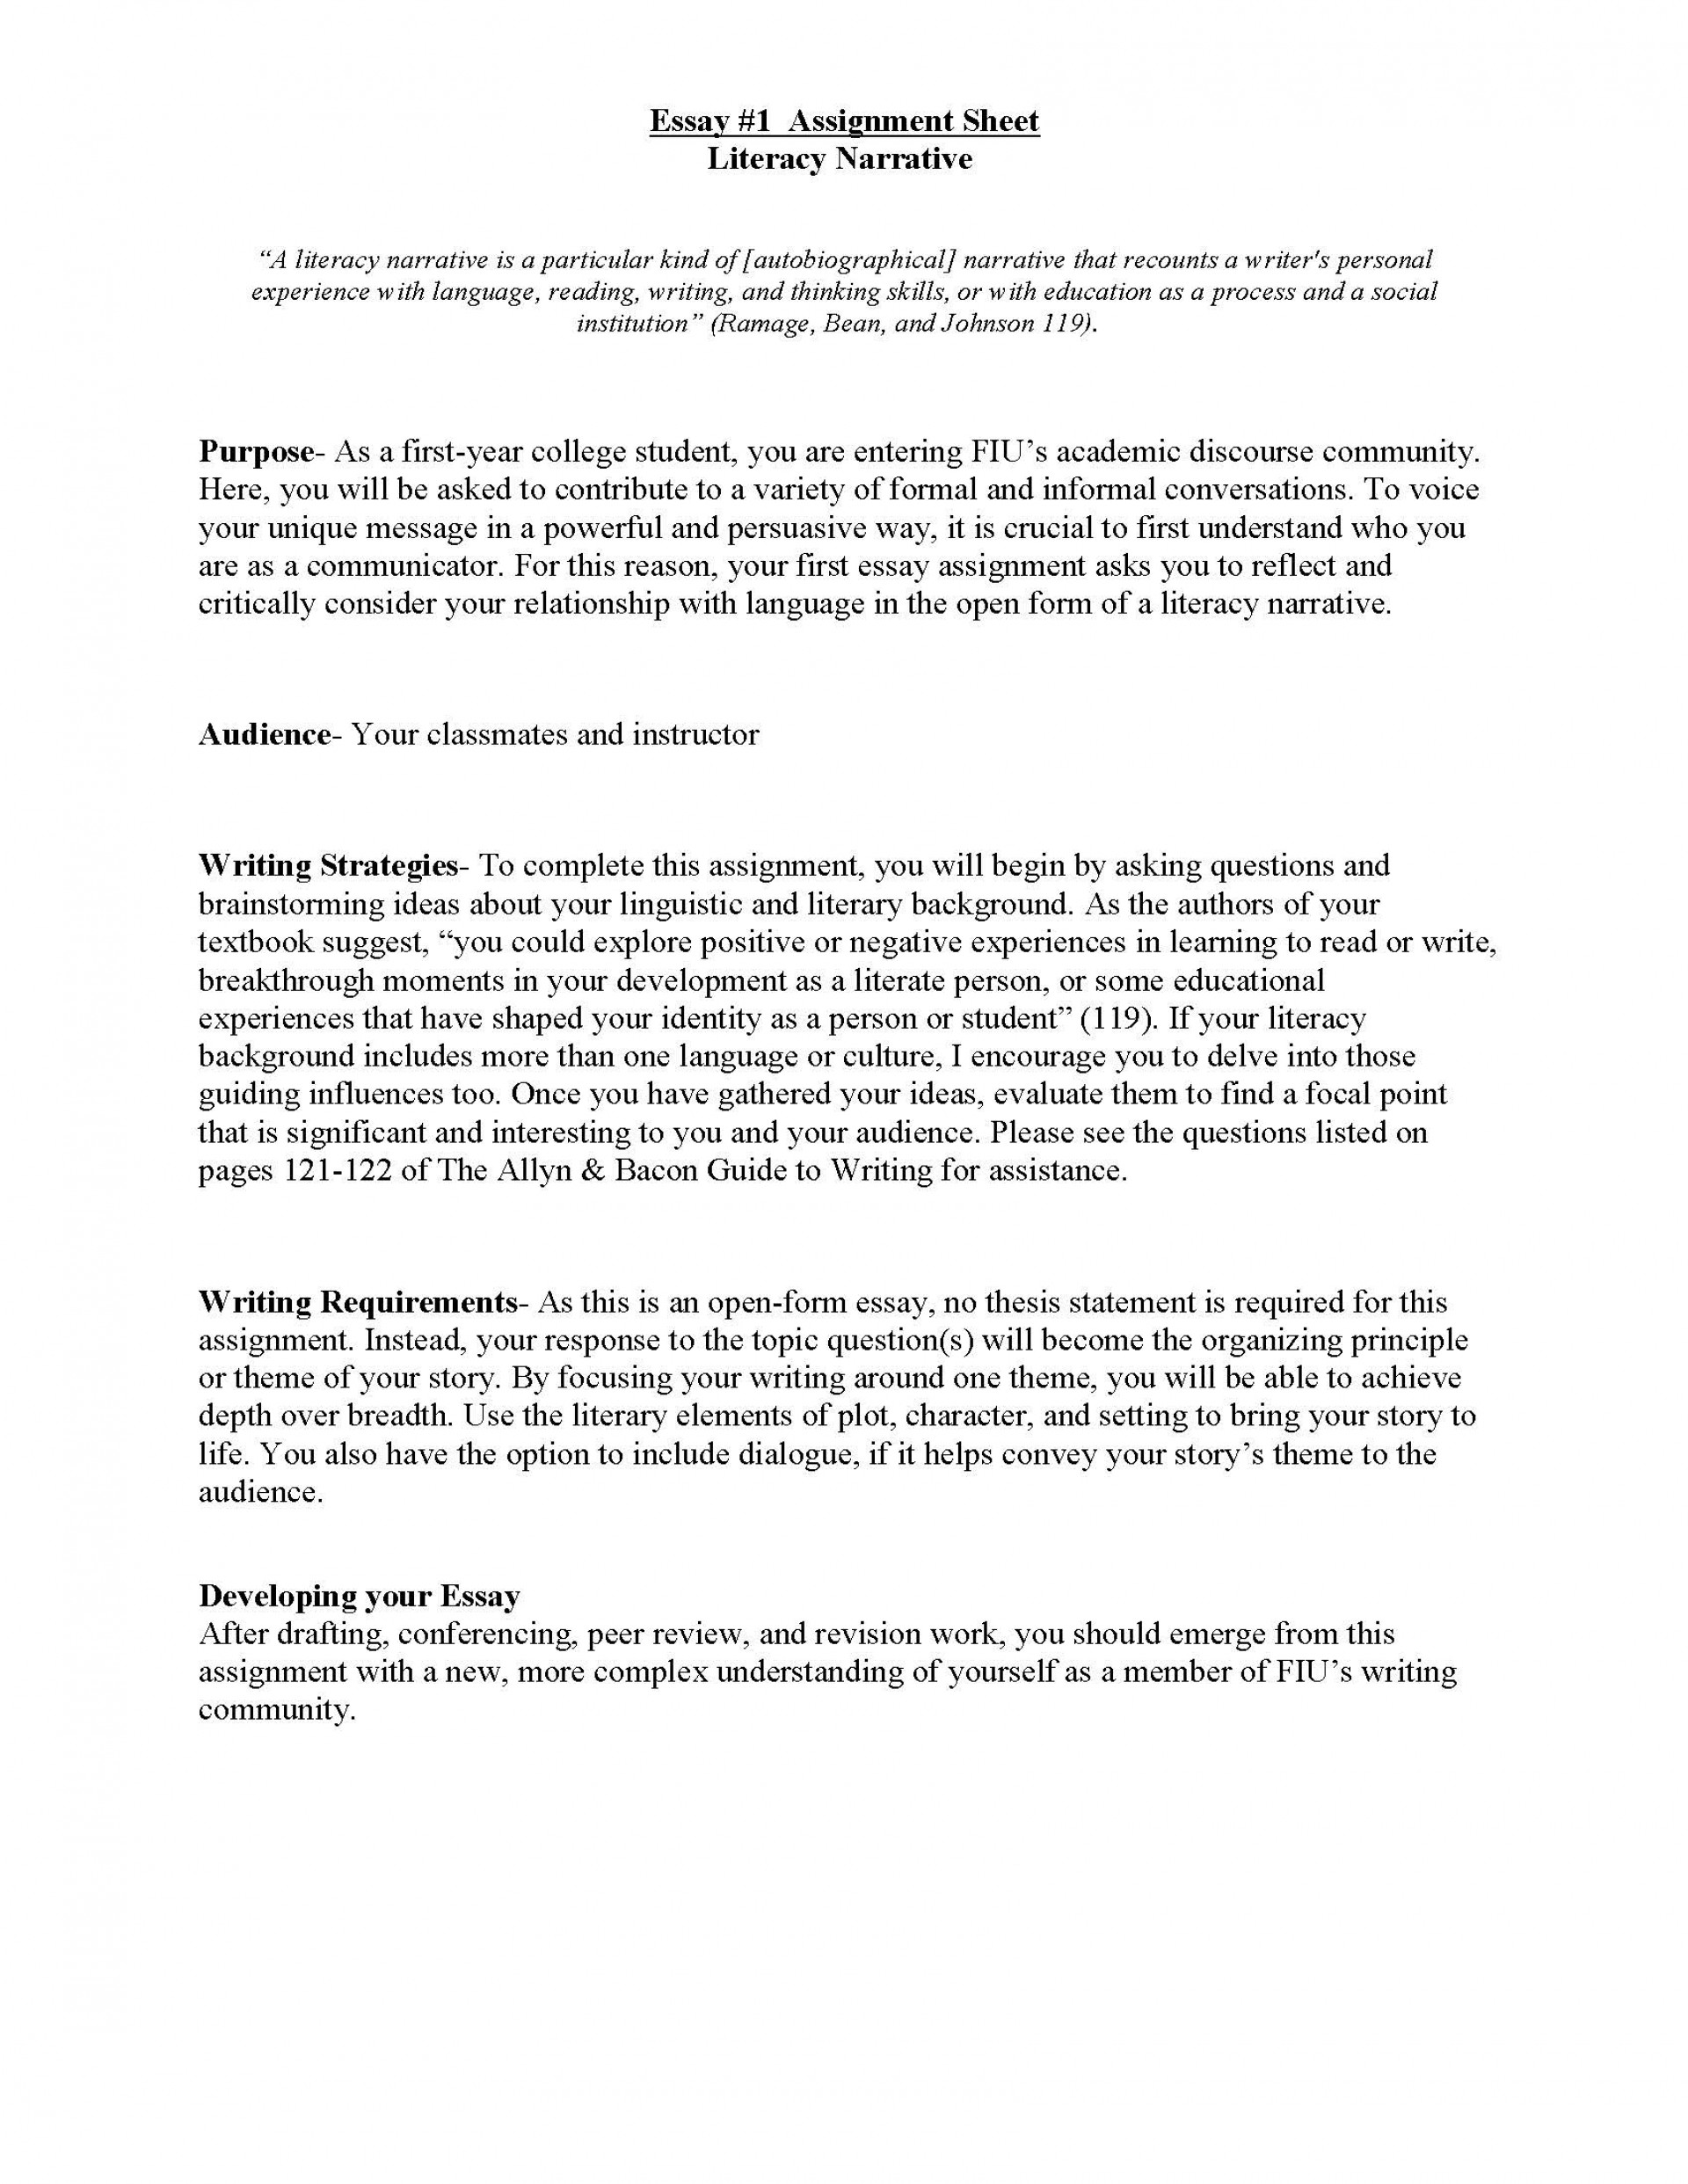 010 Essay Example Examples Of Narrative Literacy Unit Assignment Spring 2012 Page 1 Fascinating A Short About Yourself In Third Person Pdf 1920